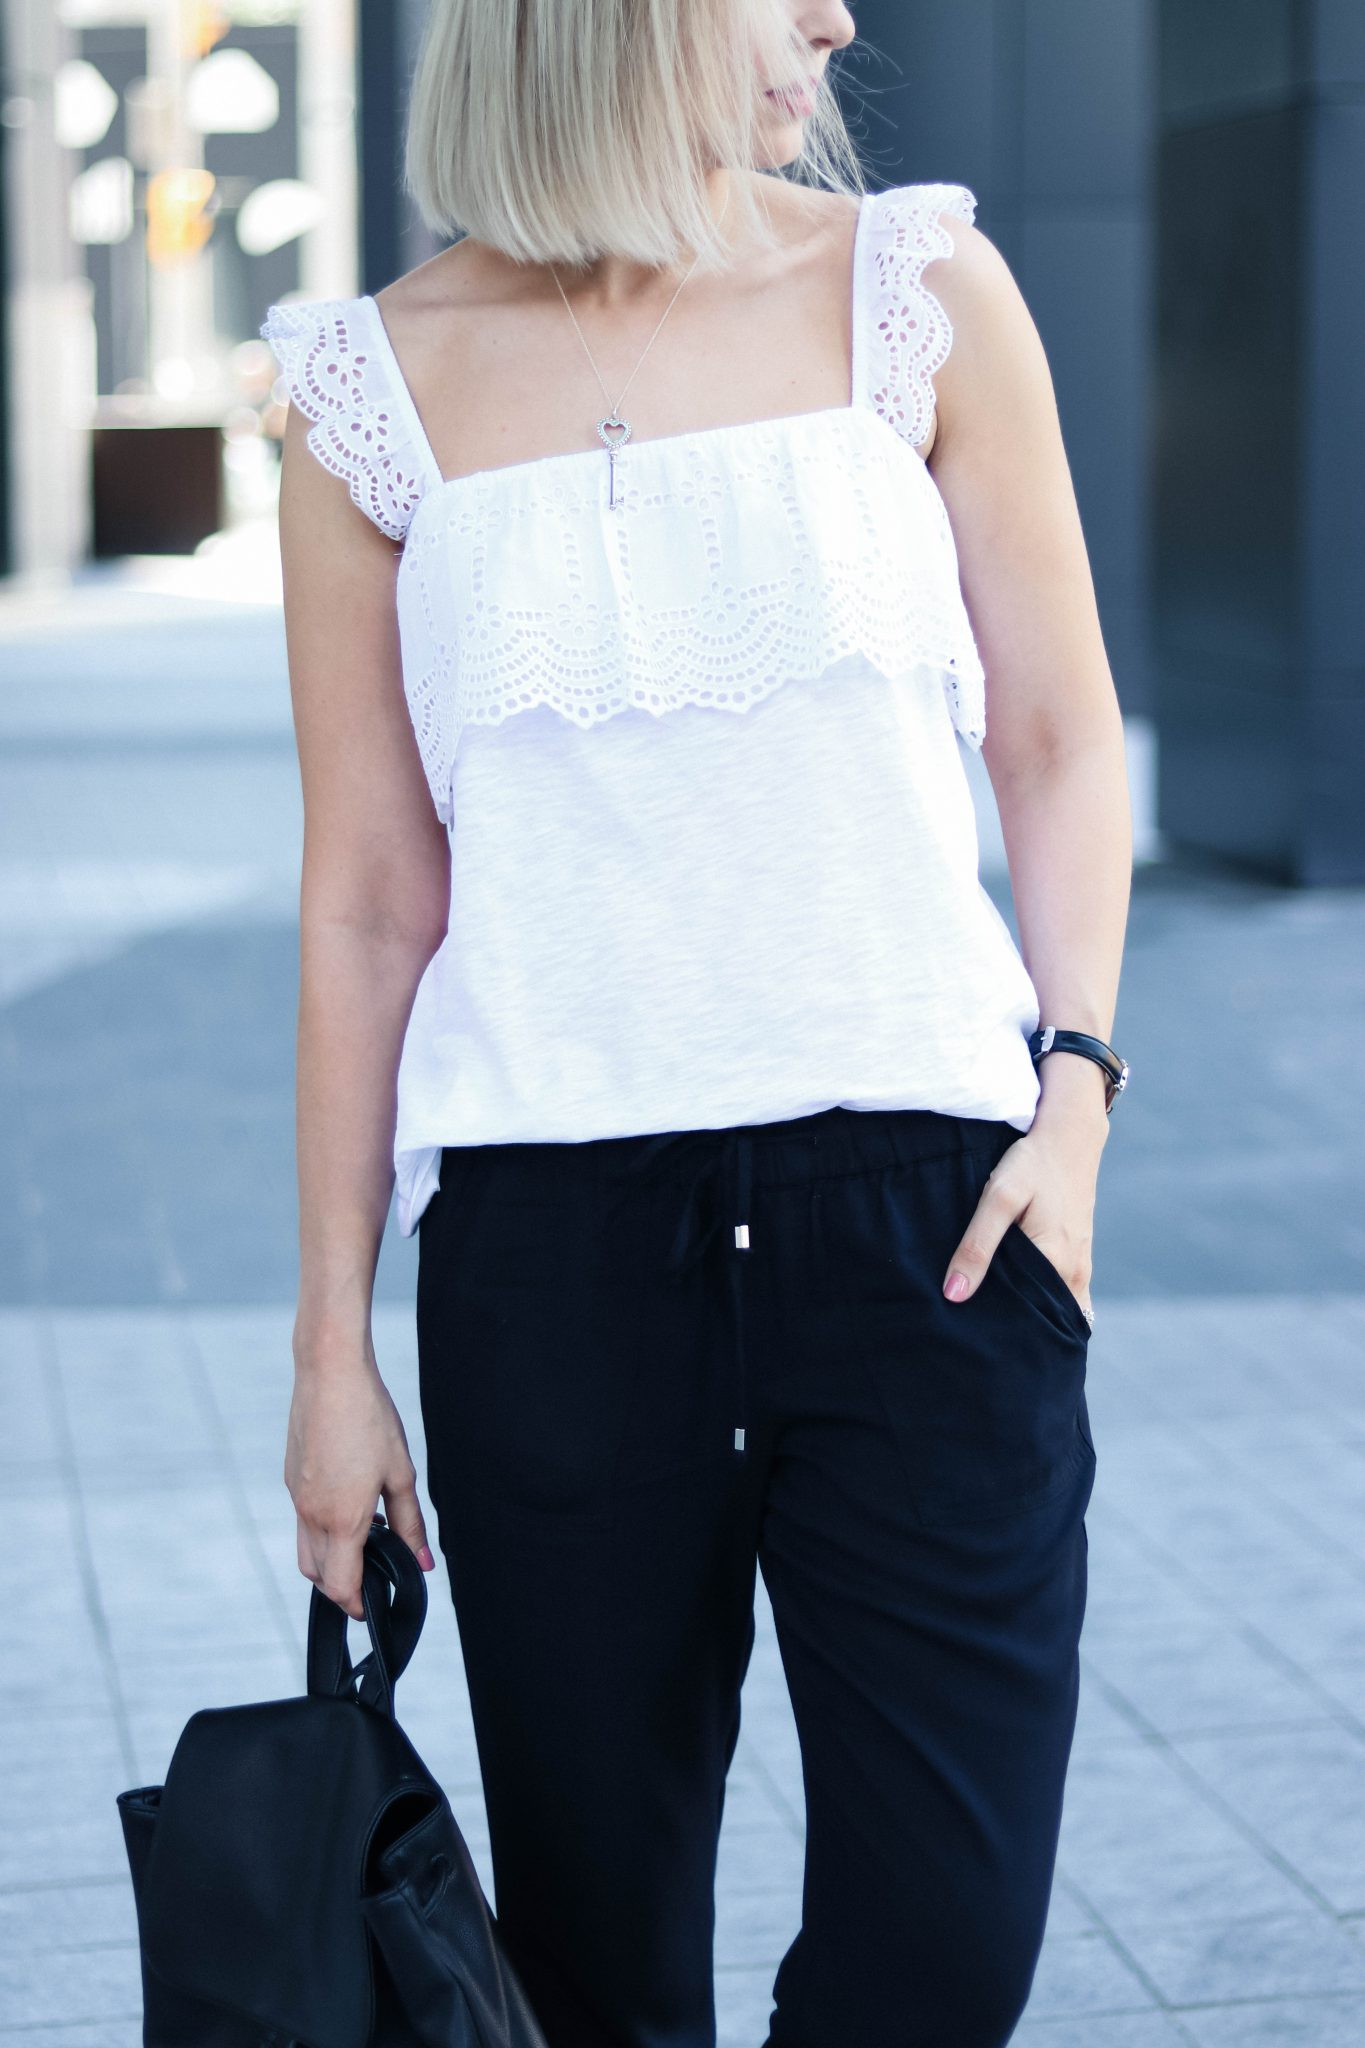 hm broderie anglaise top summer style 2